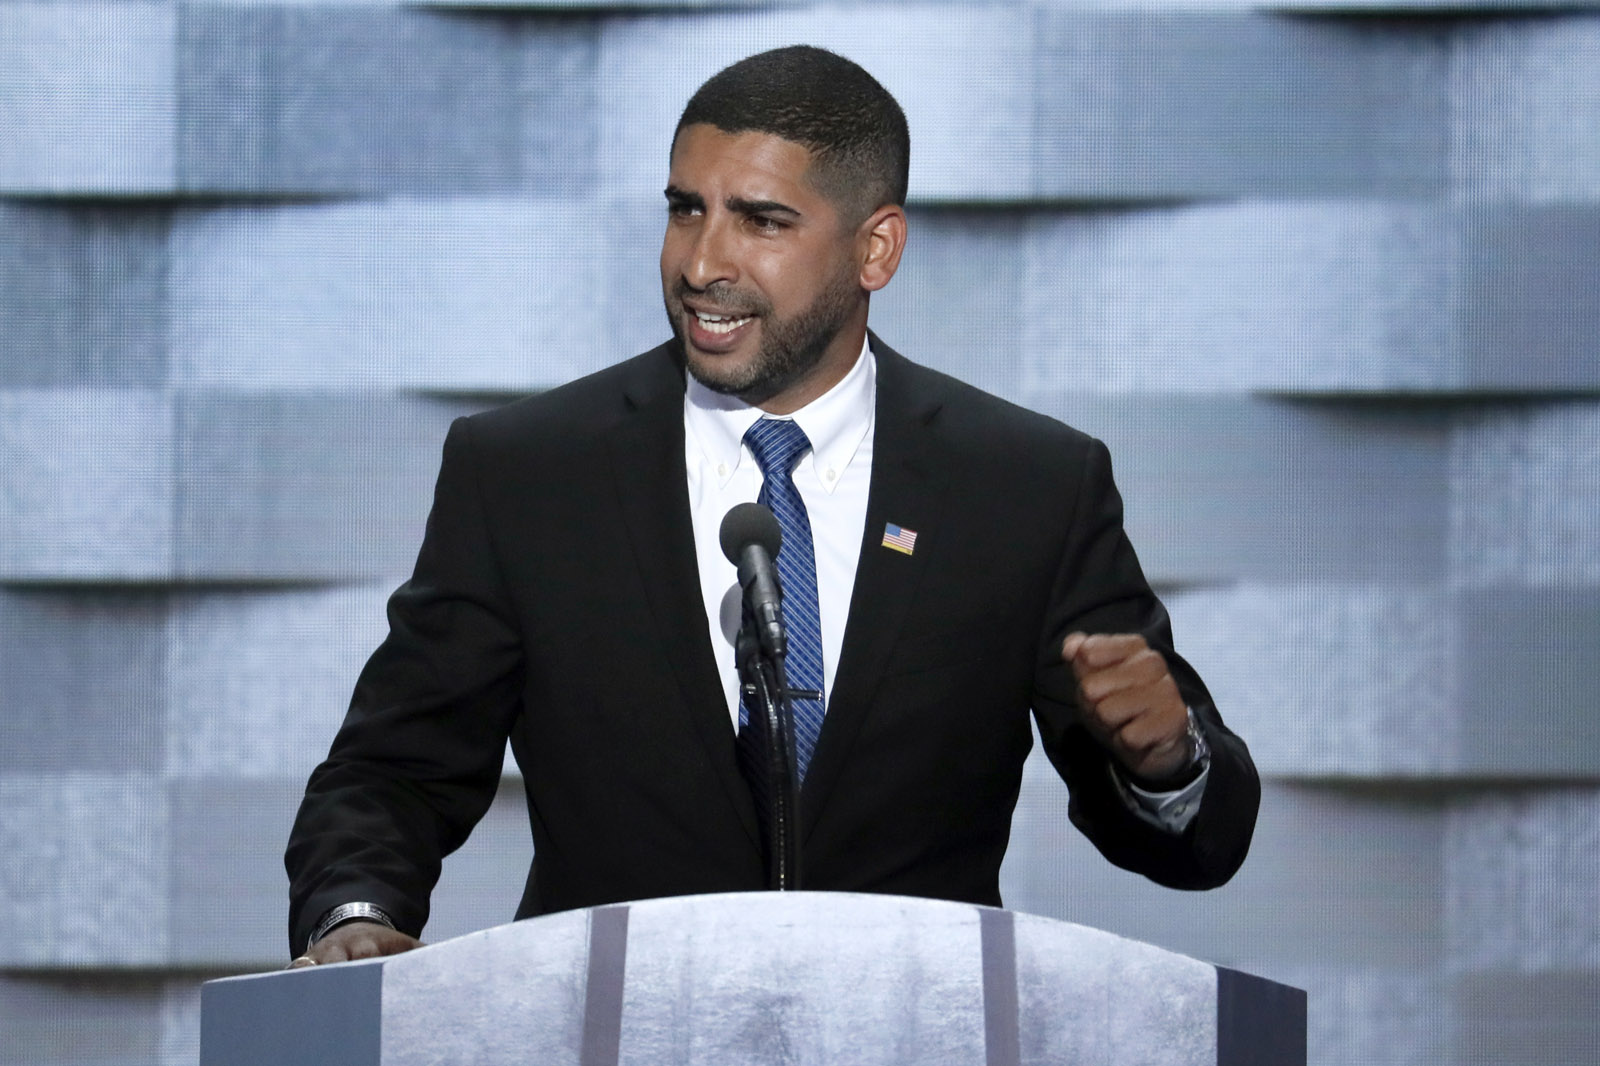 Medal of Honor recipient U.S. Army Capt. Florent Groberg, (Ret.) speaks during the final day of the Democratic National Convention in Philadelphia , Thursday, July 28, 2016. (AP Photo/J. Scott Applewhite)